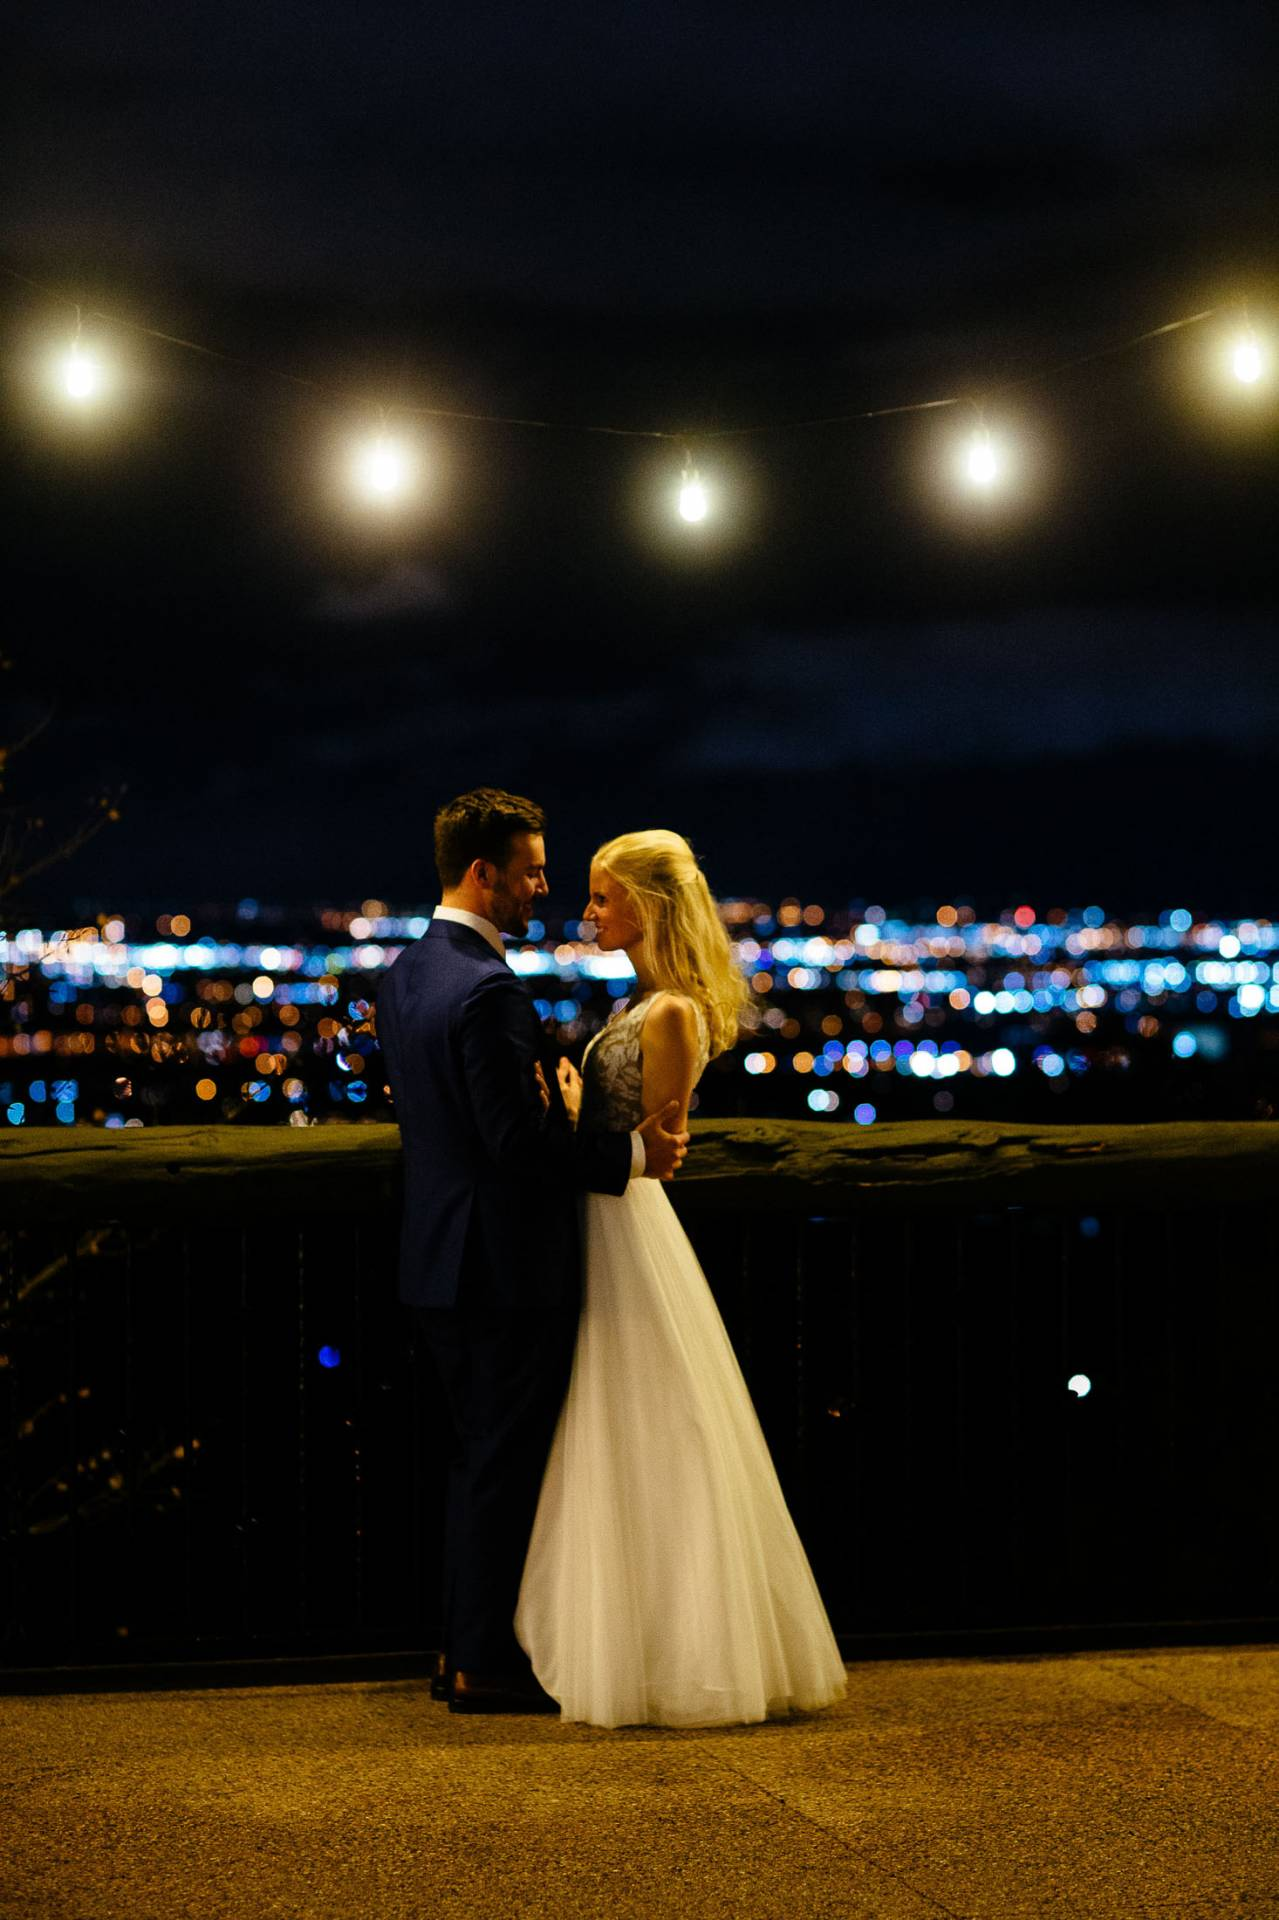 Bride and groom embrace on the deck outslide the Cheyenne Lodge with city lights in the background.